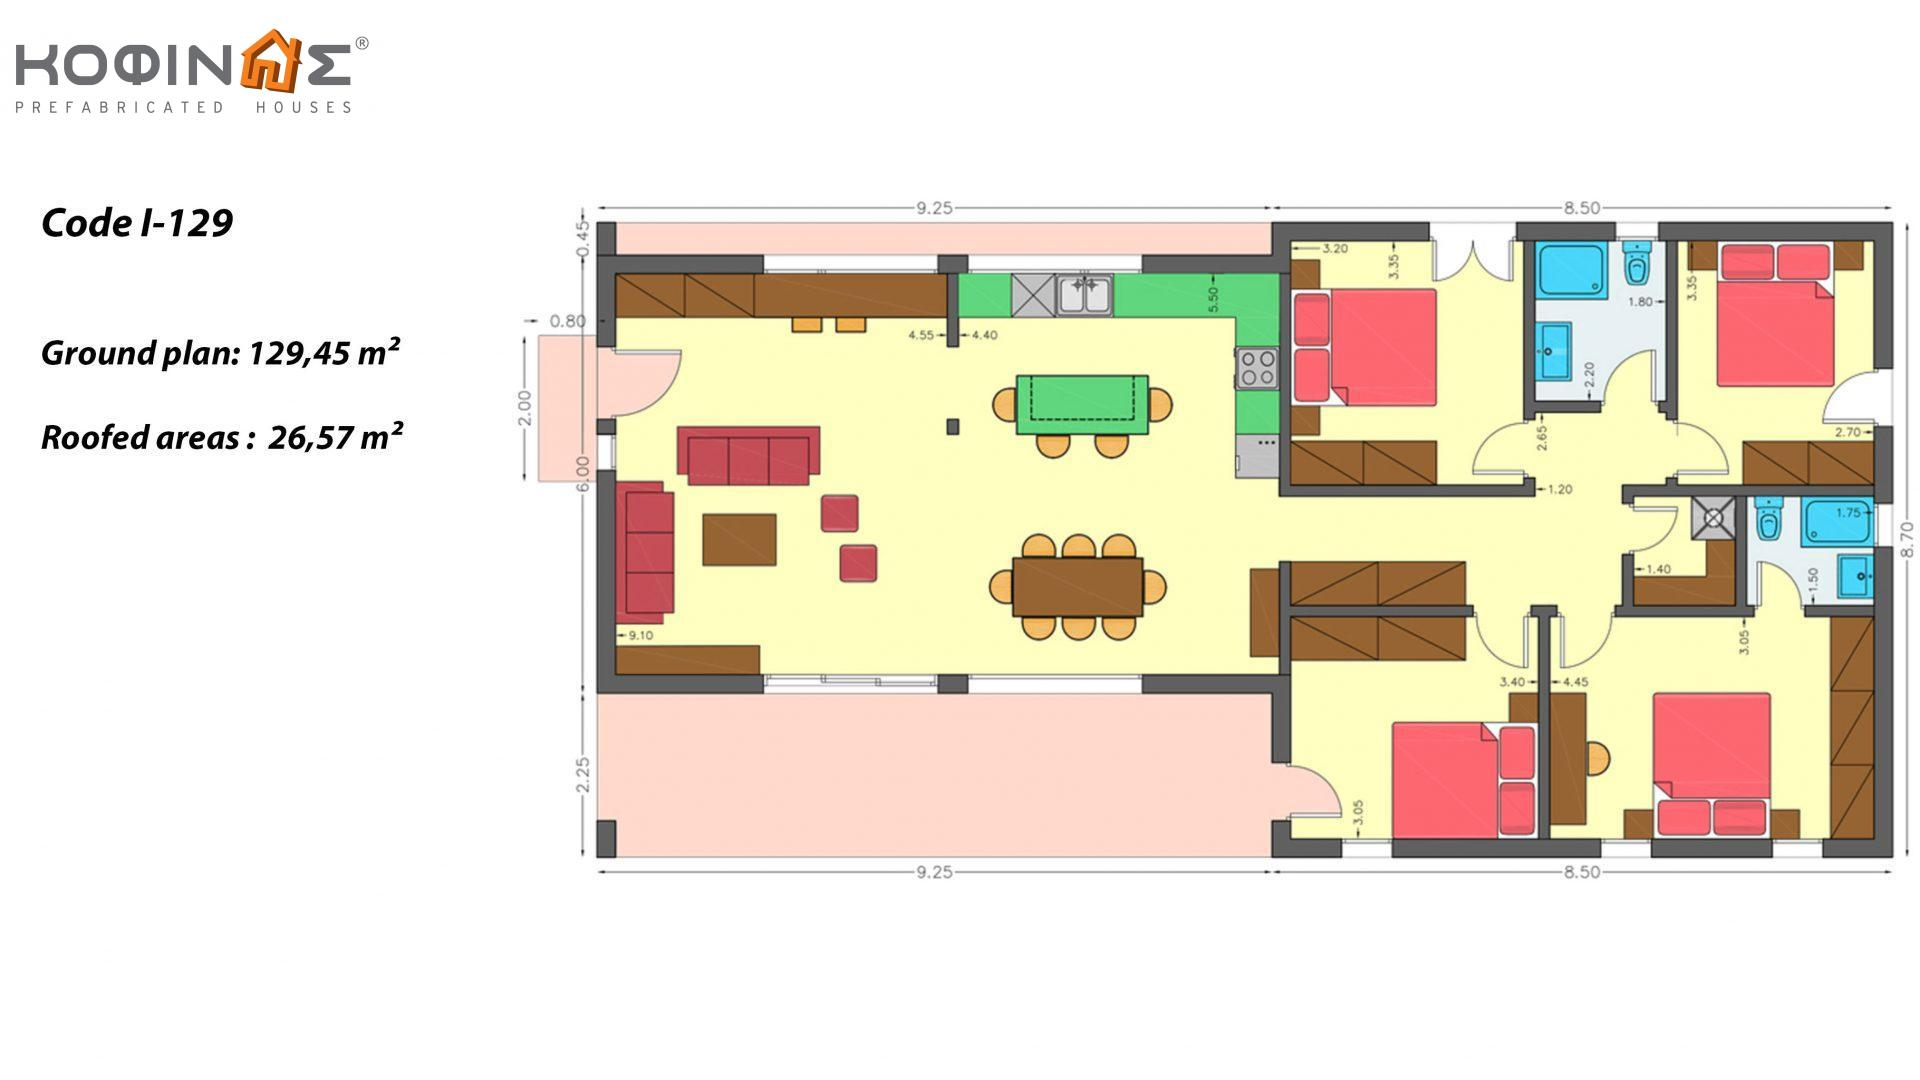 1-story house I-129, total surface of 129,45 m², roofed areas 26.57 m²